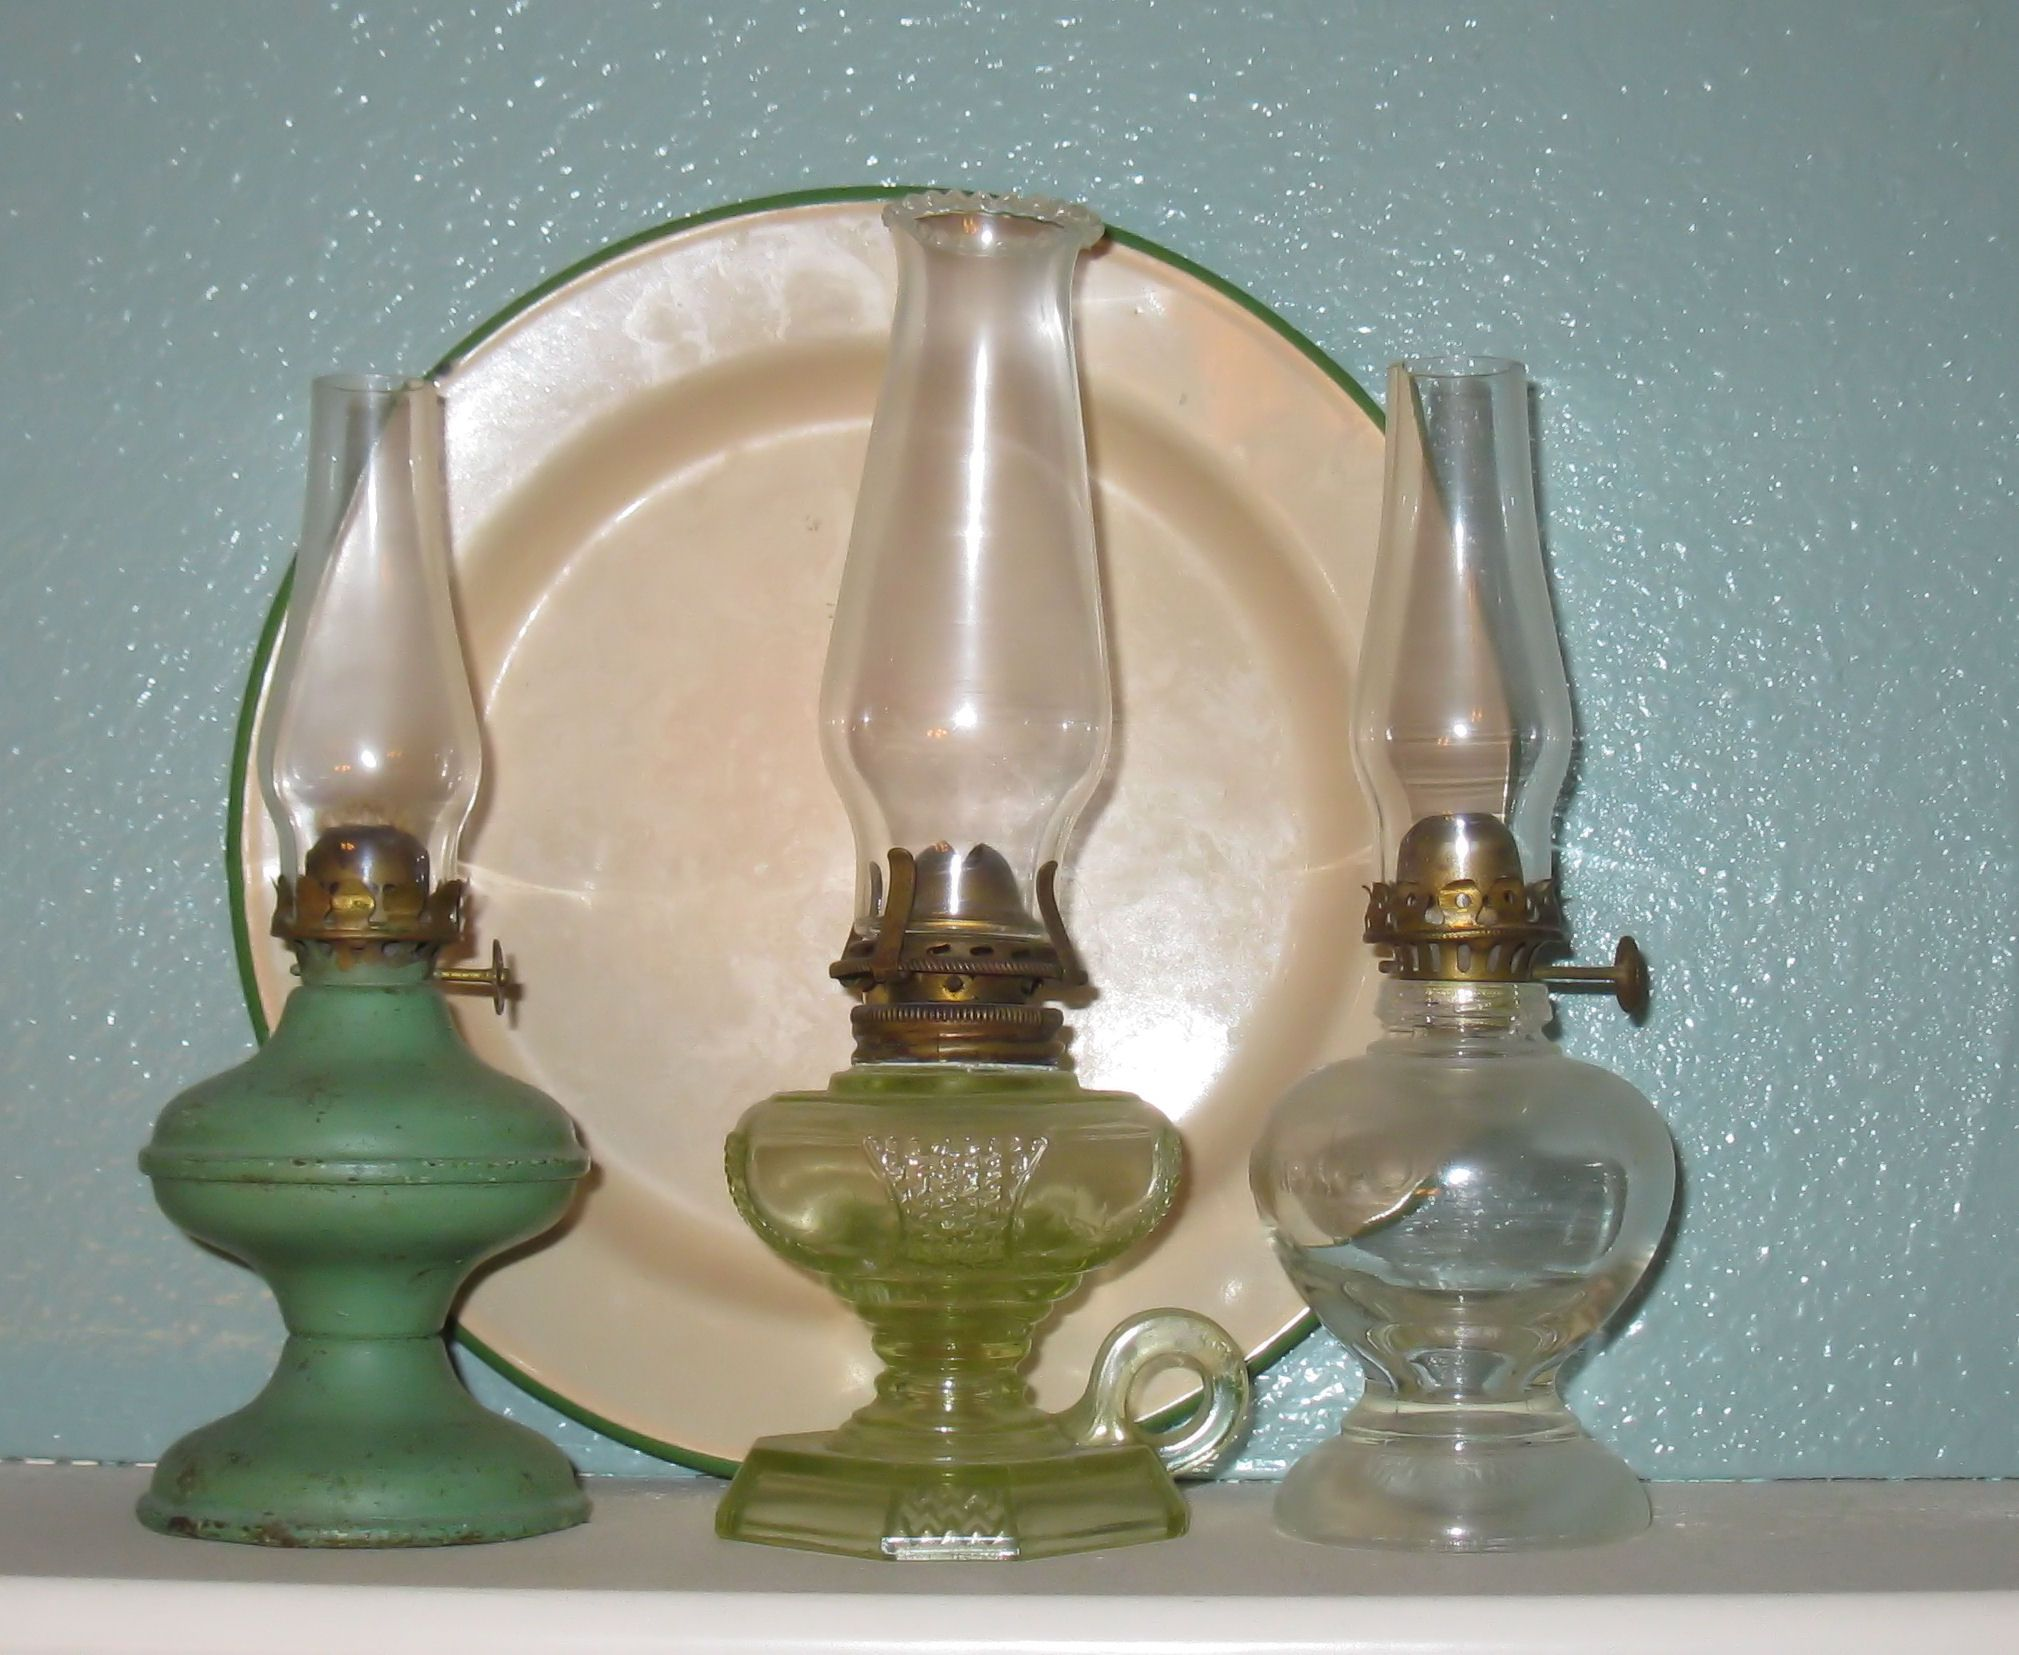 Some of my miniature oil lamps